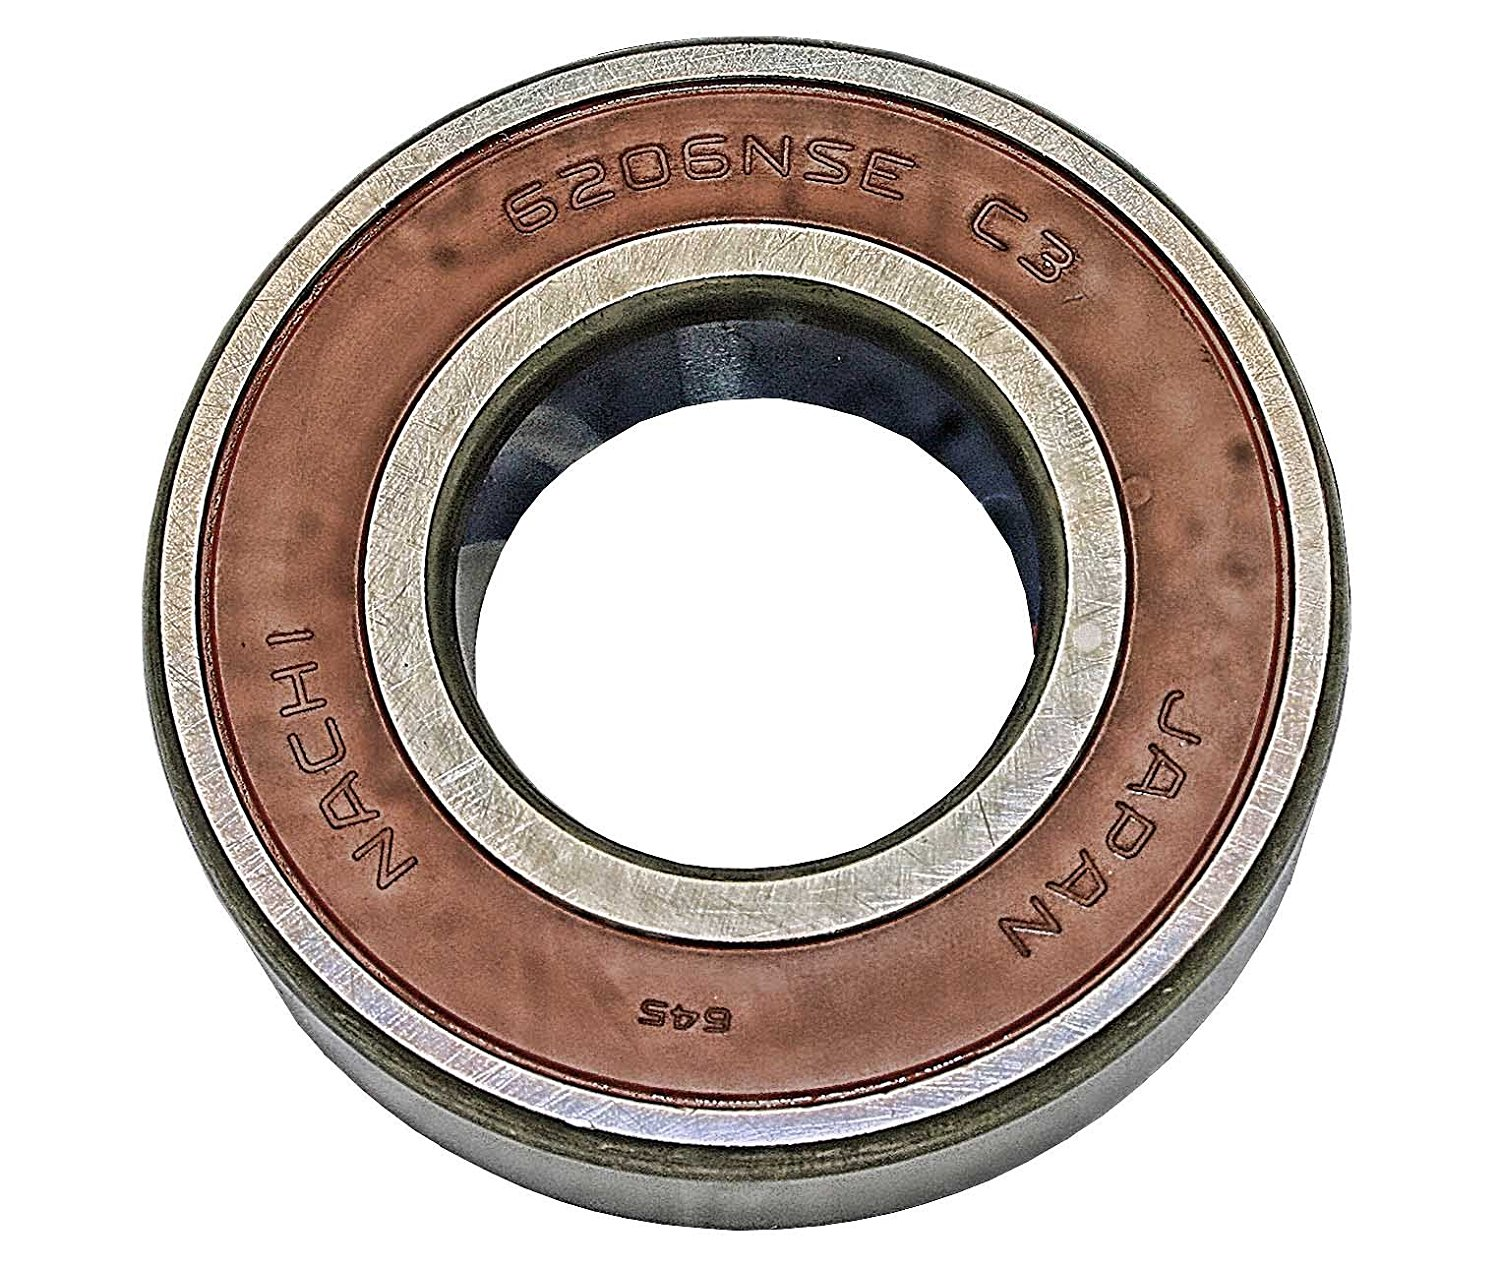 Deep Groove Ball Bearing 6206 6206 2rs 6206 Zz Meya Bearing